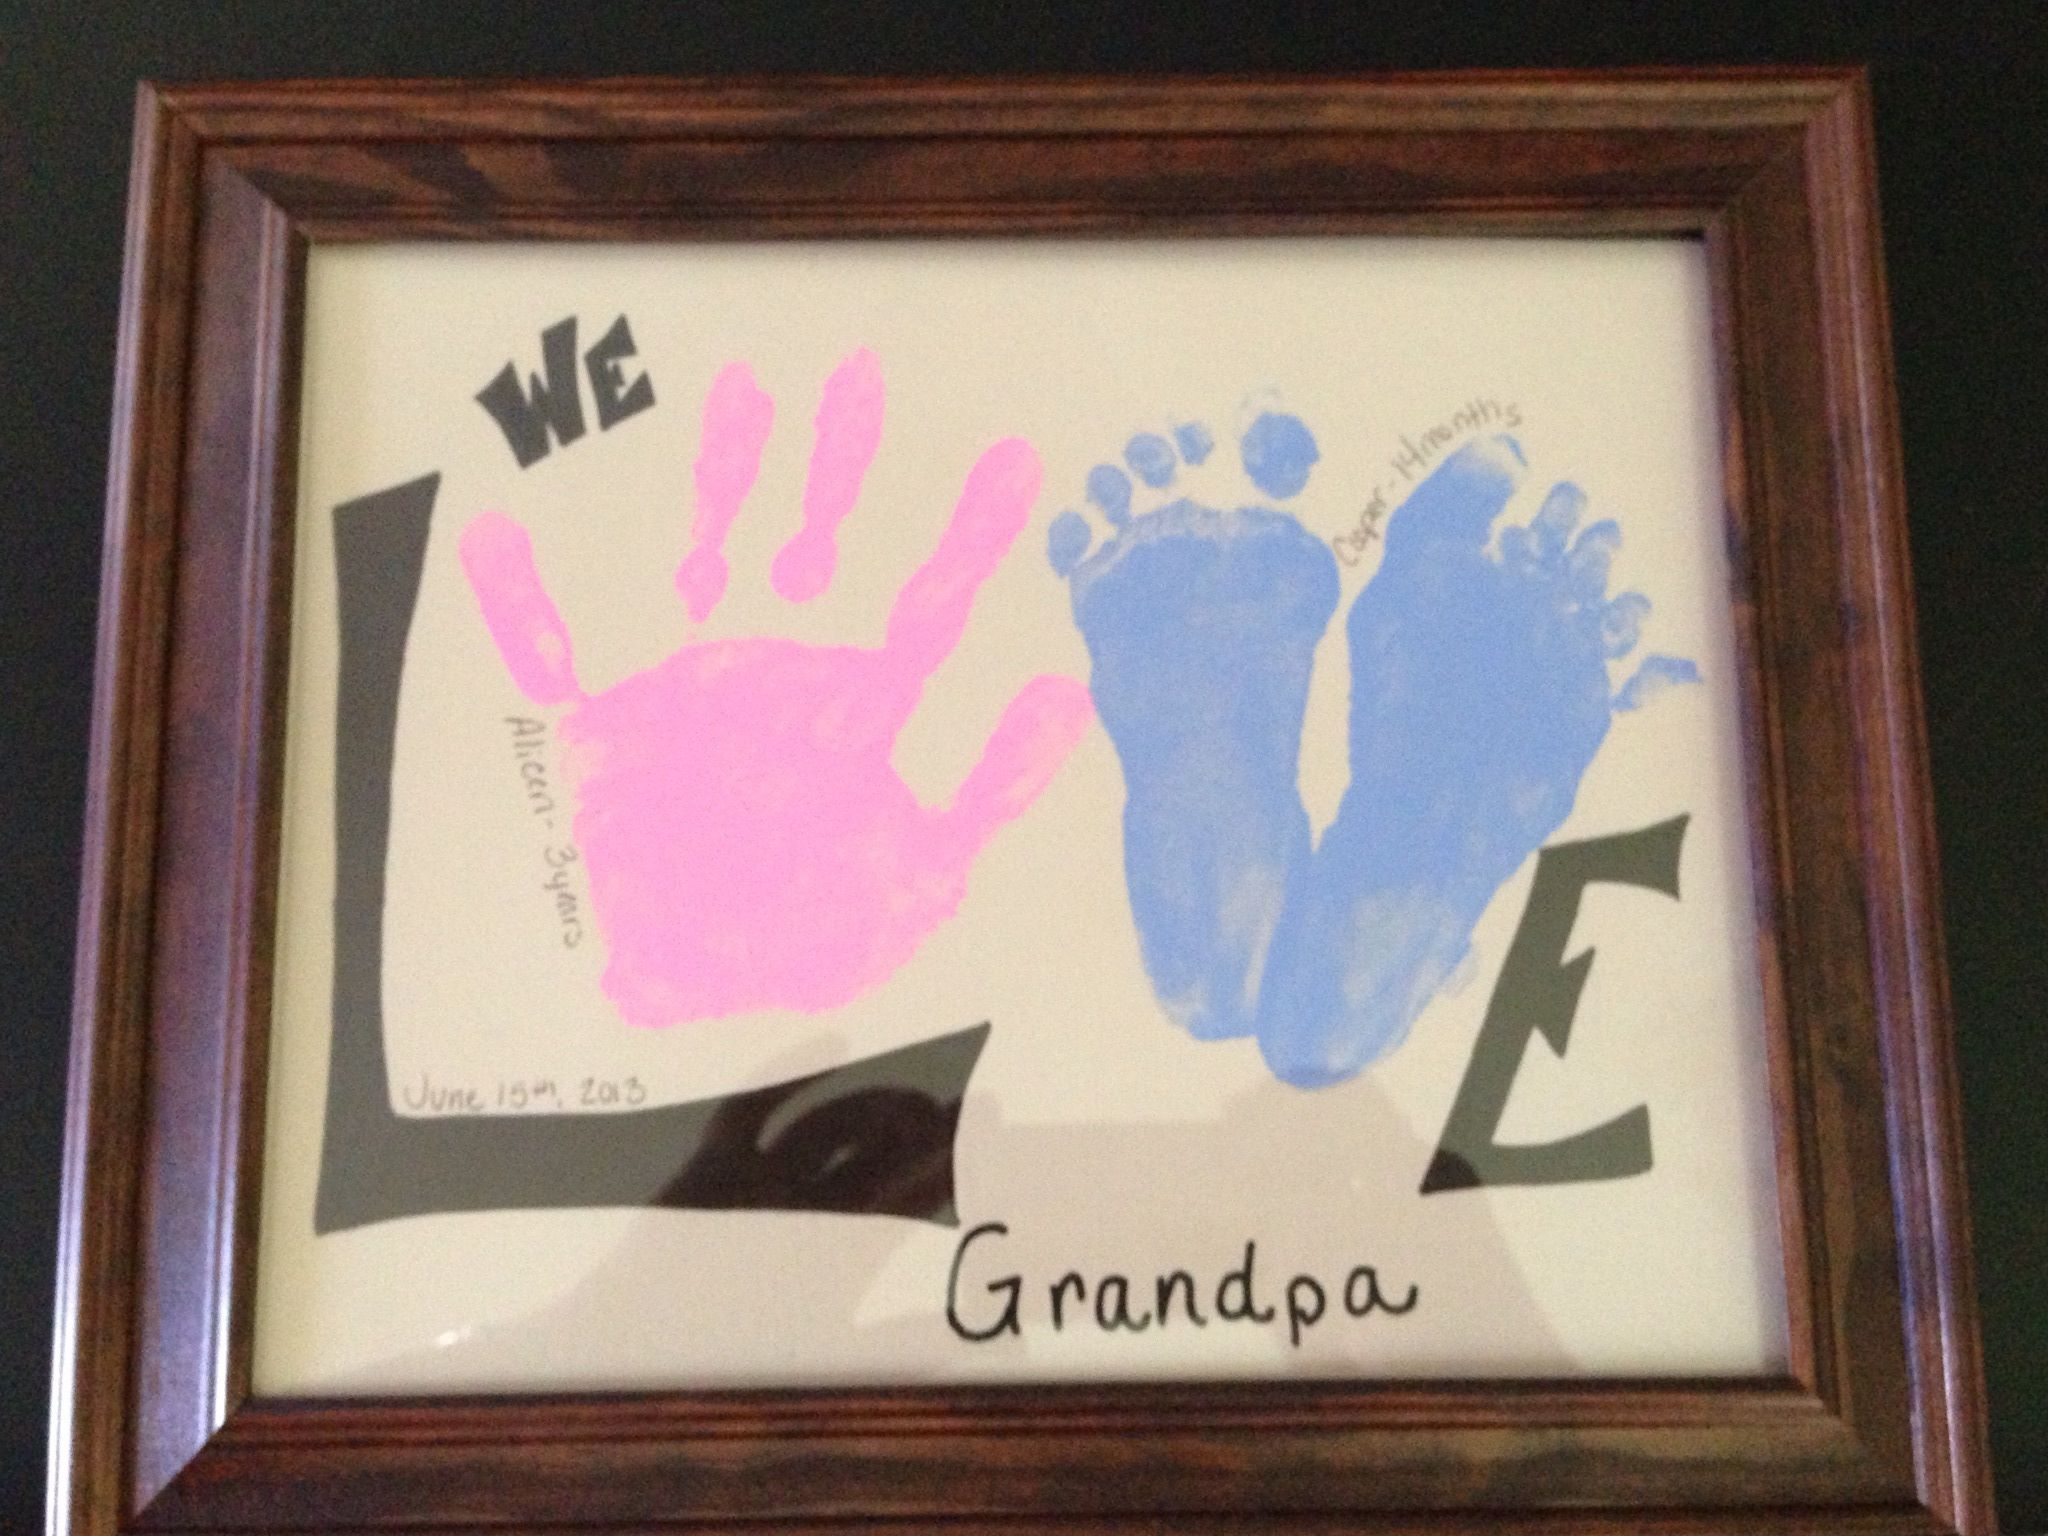 Easy Diy Birthday Gifts For Dad Father 39s Day Homemade Gifts For Grandpa Imagefiltr